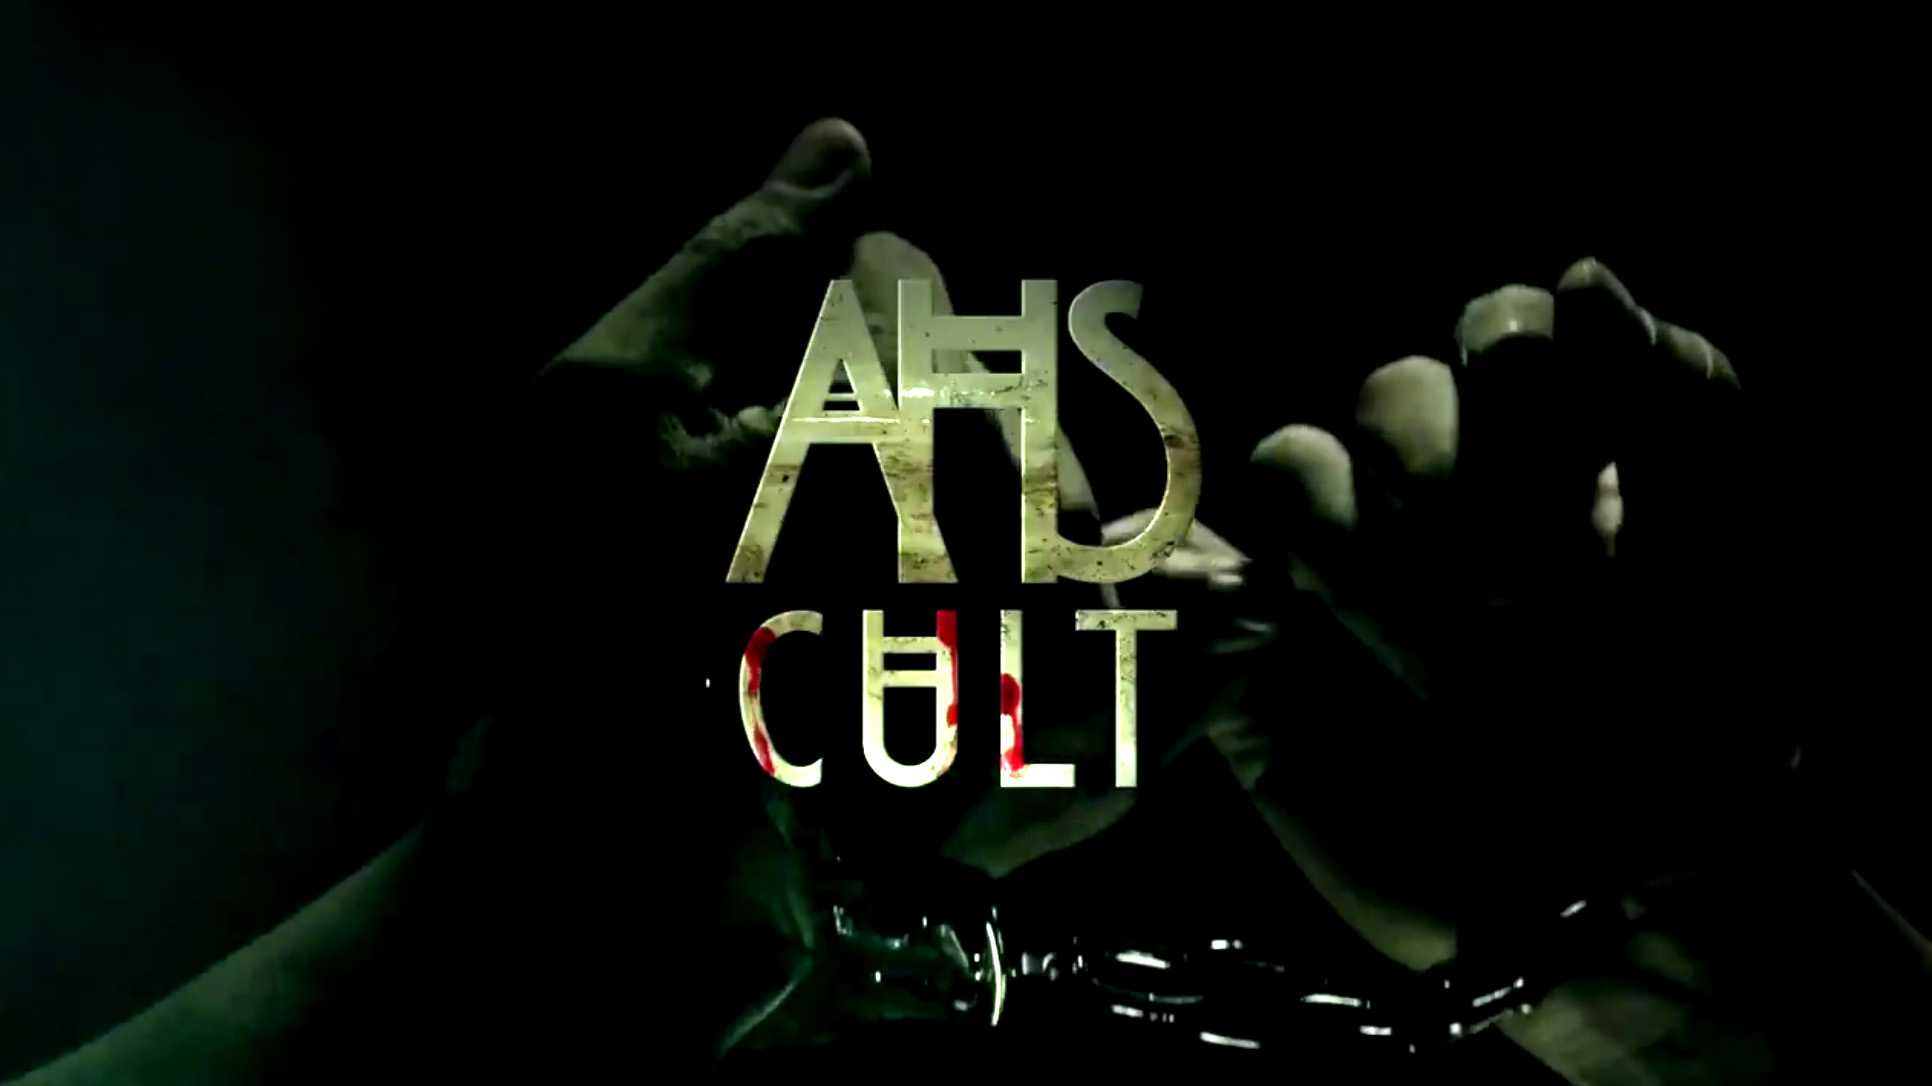 ahs cult theme sigla video